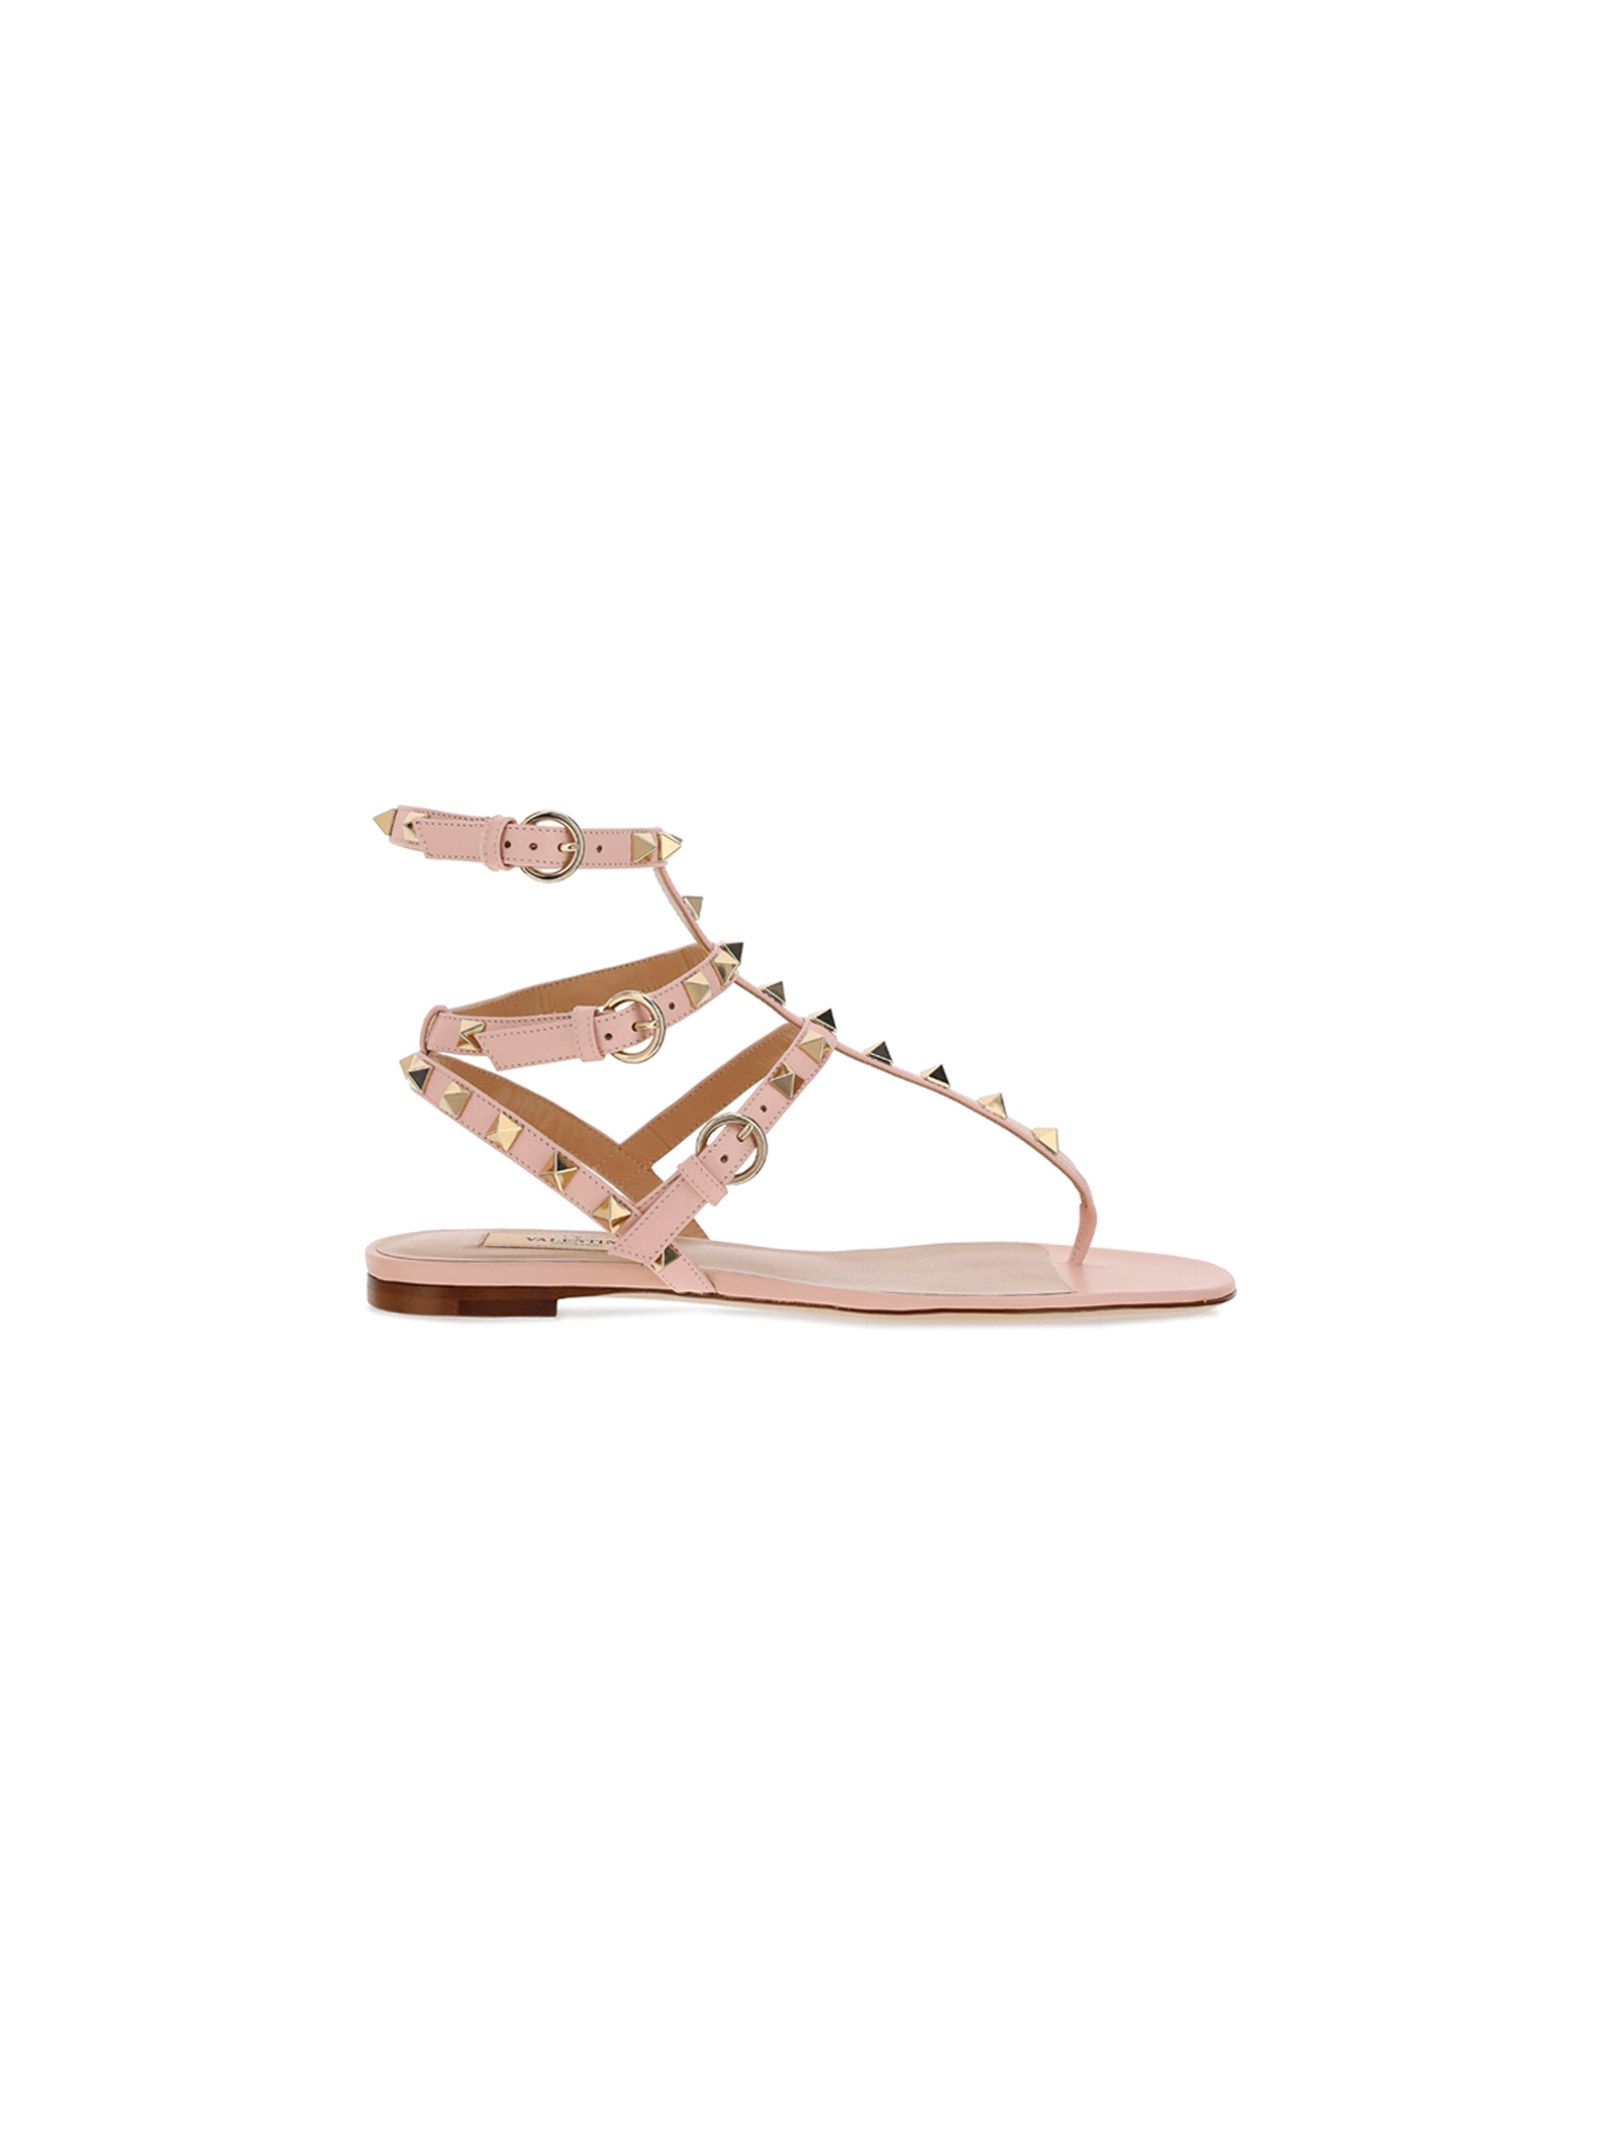 Valentino Leathers VALENTINO GARAVANI WOMEN'S VW2S0812VOD16Q PINK OTHER MATERIALS SANDALS